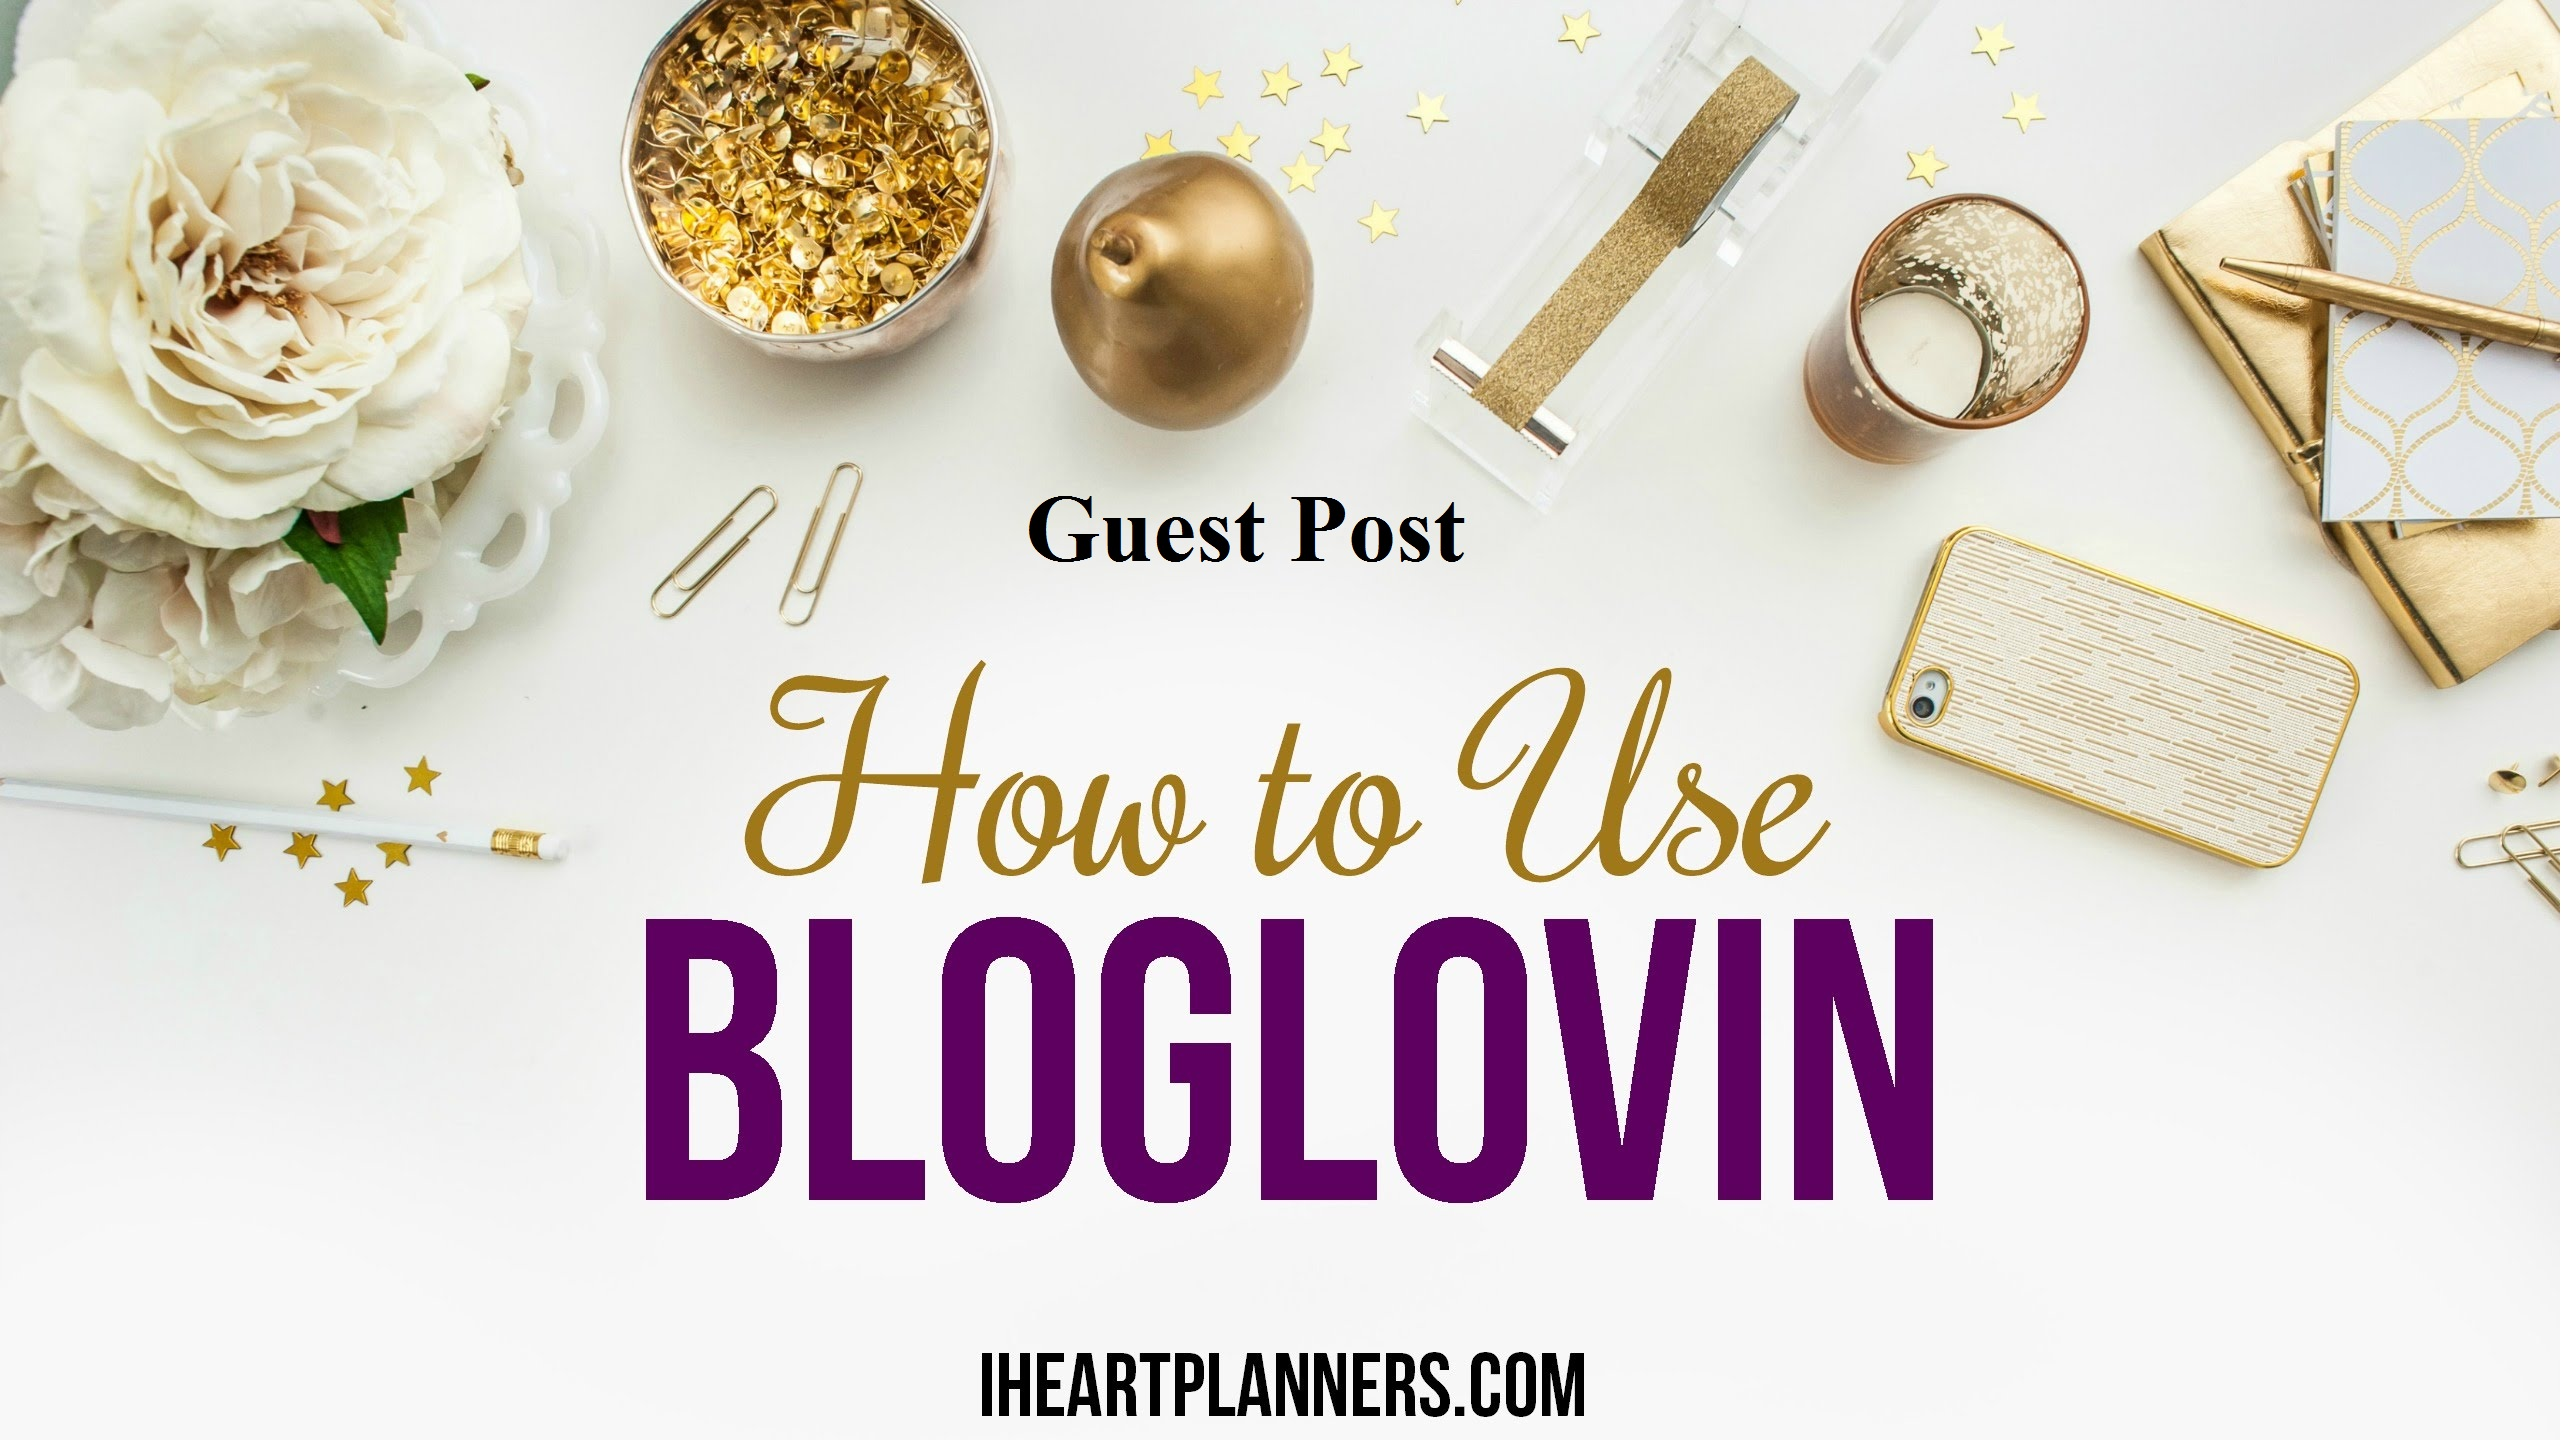 Publish a guest post on Bloglovin with Google Indexable